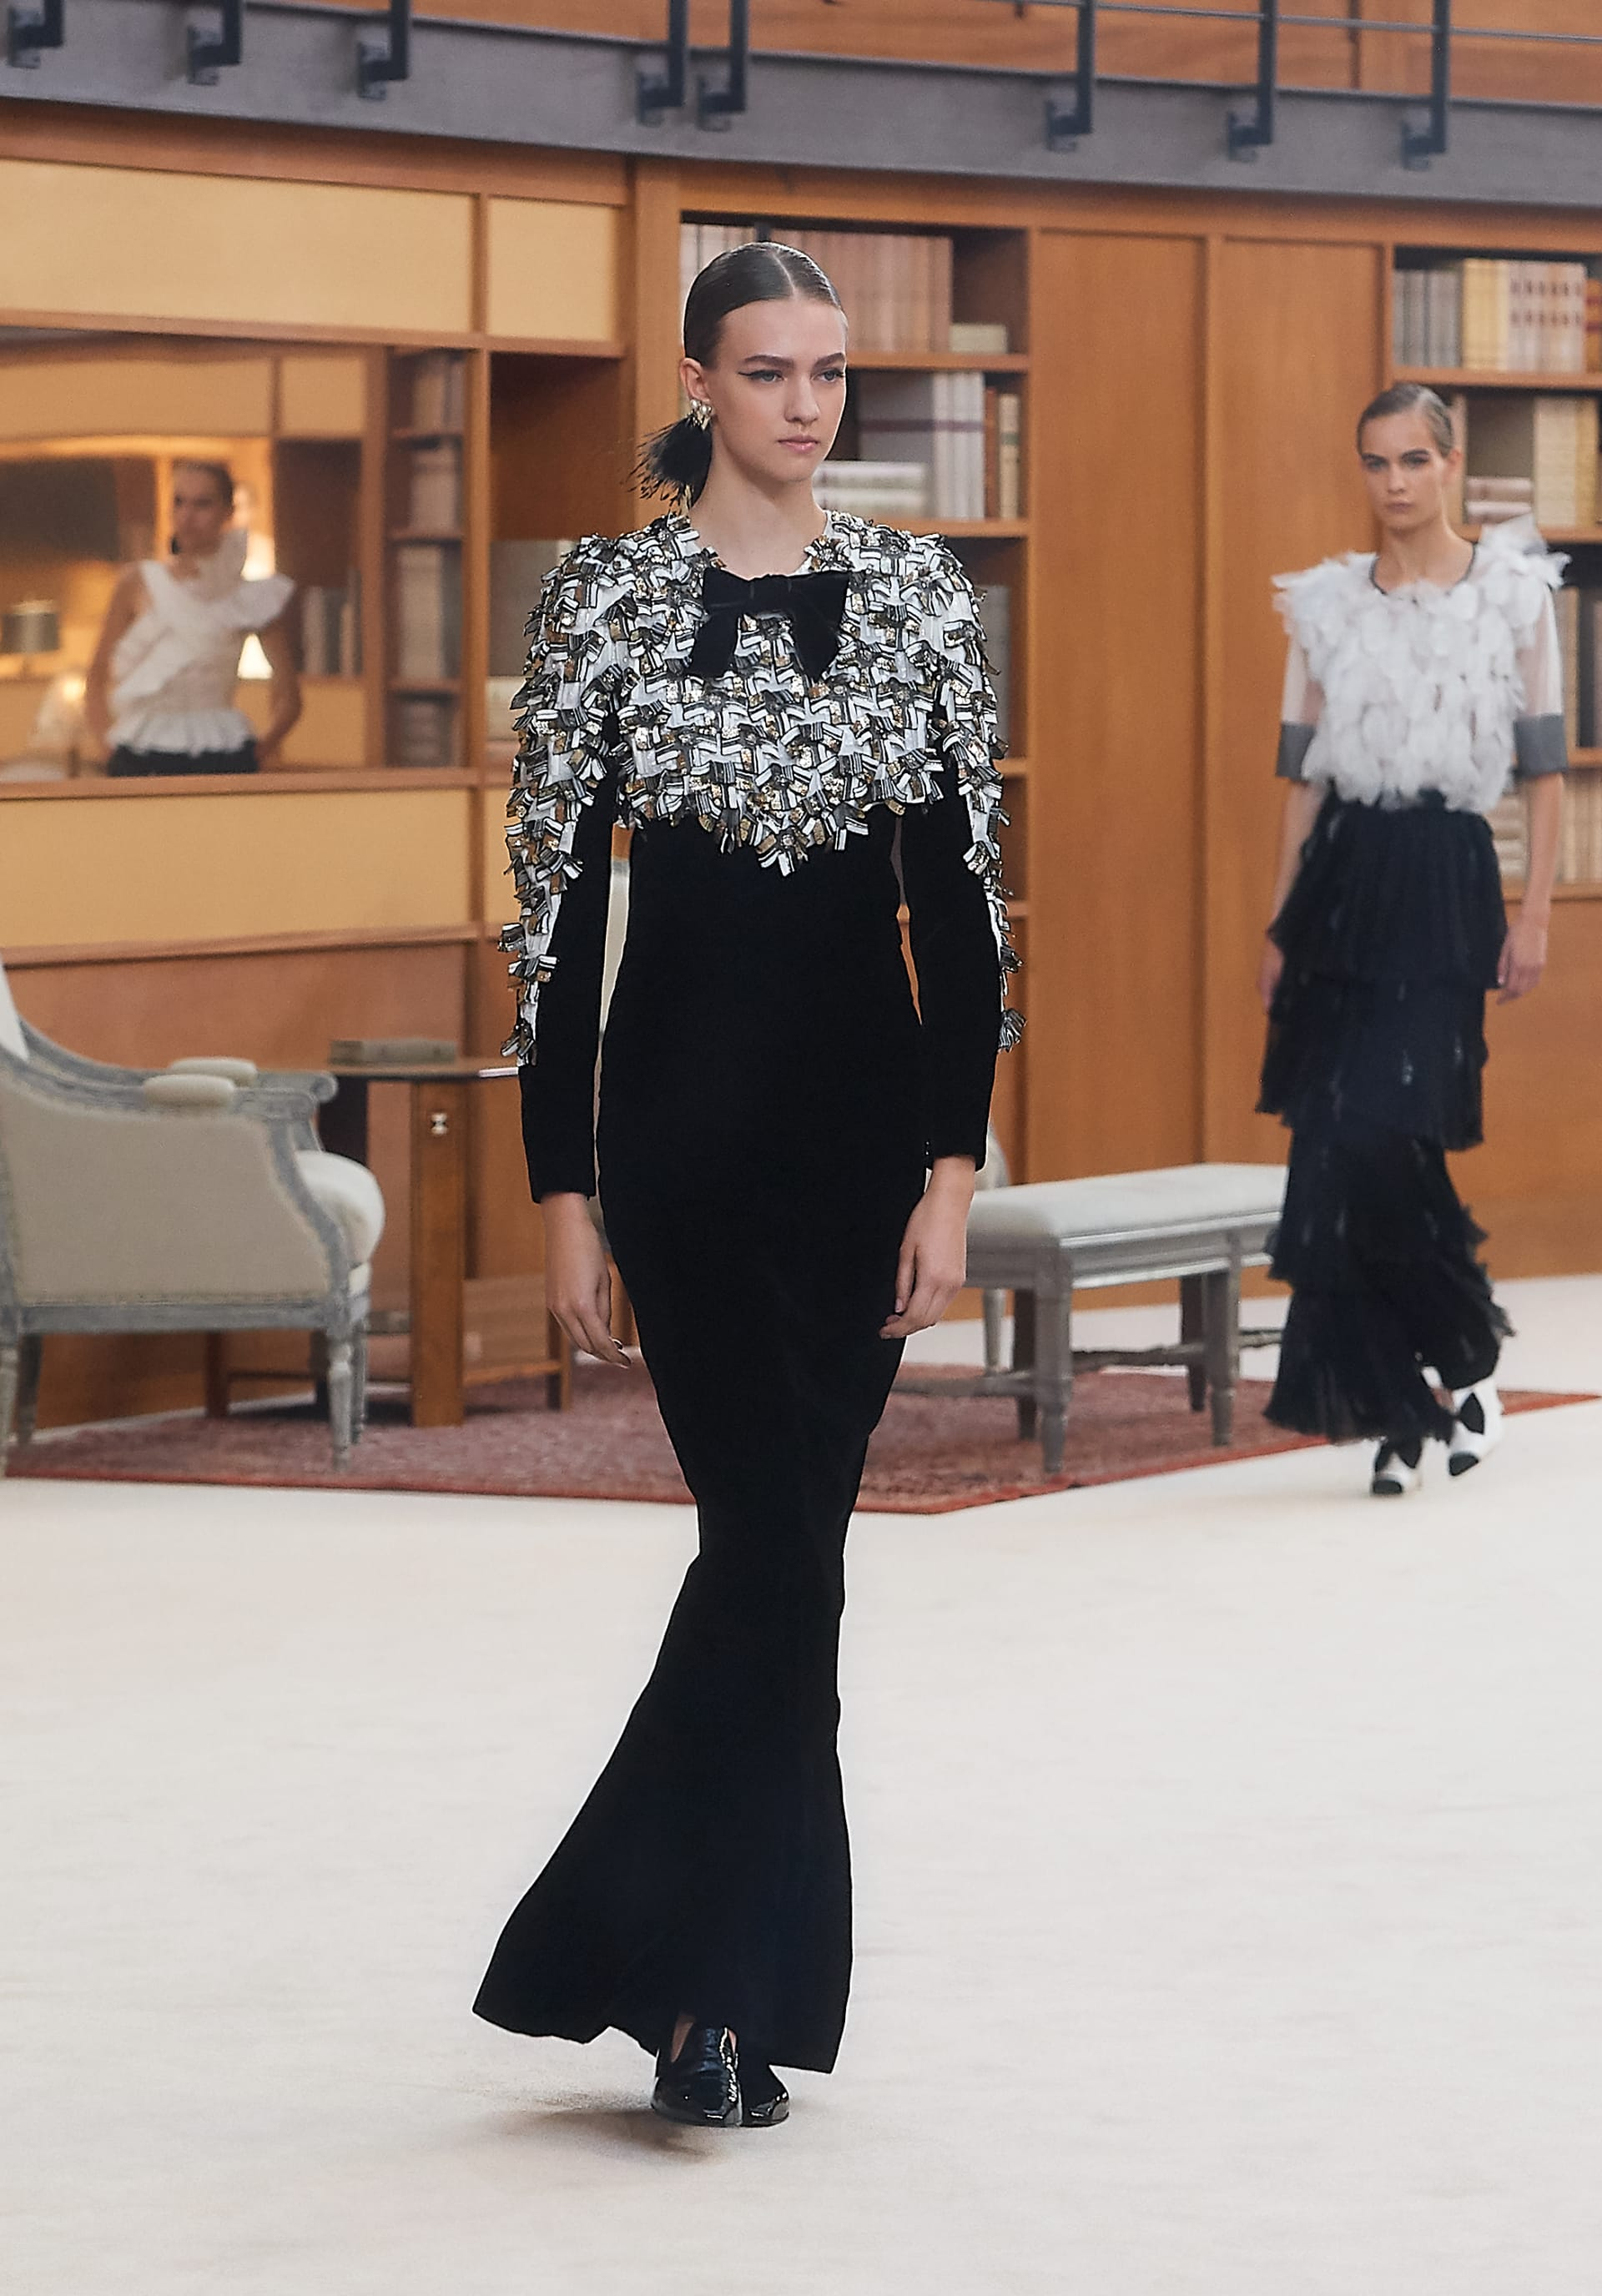 View 1 - Look 58 - Fall-Winter 2019/20 Haute-Couture - see full sized version